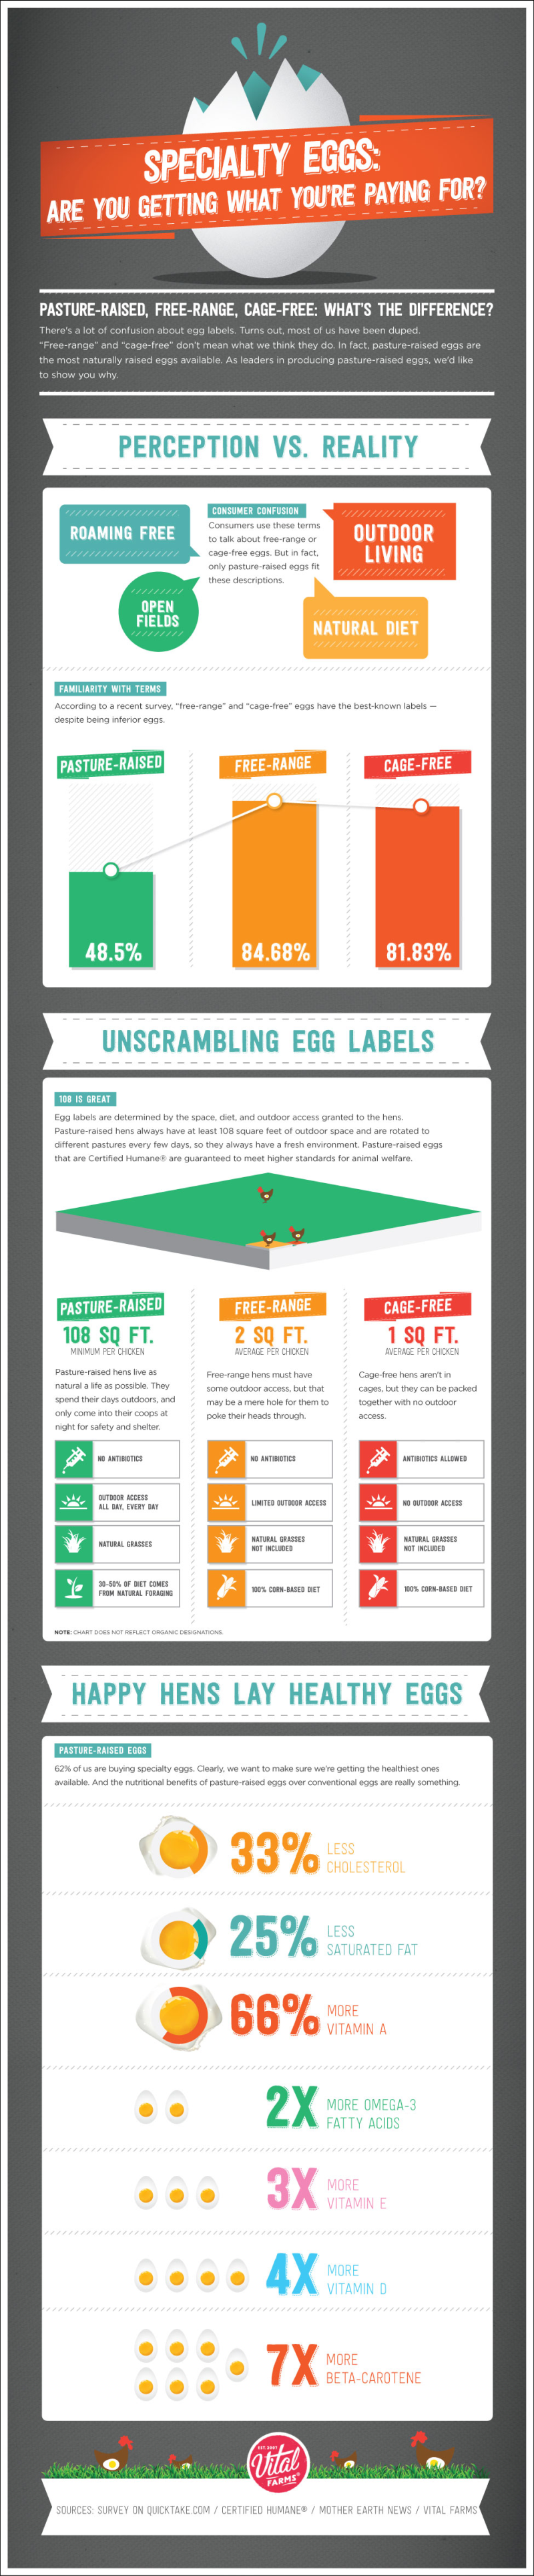 Specialty Eggs Infographic